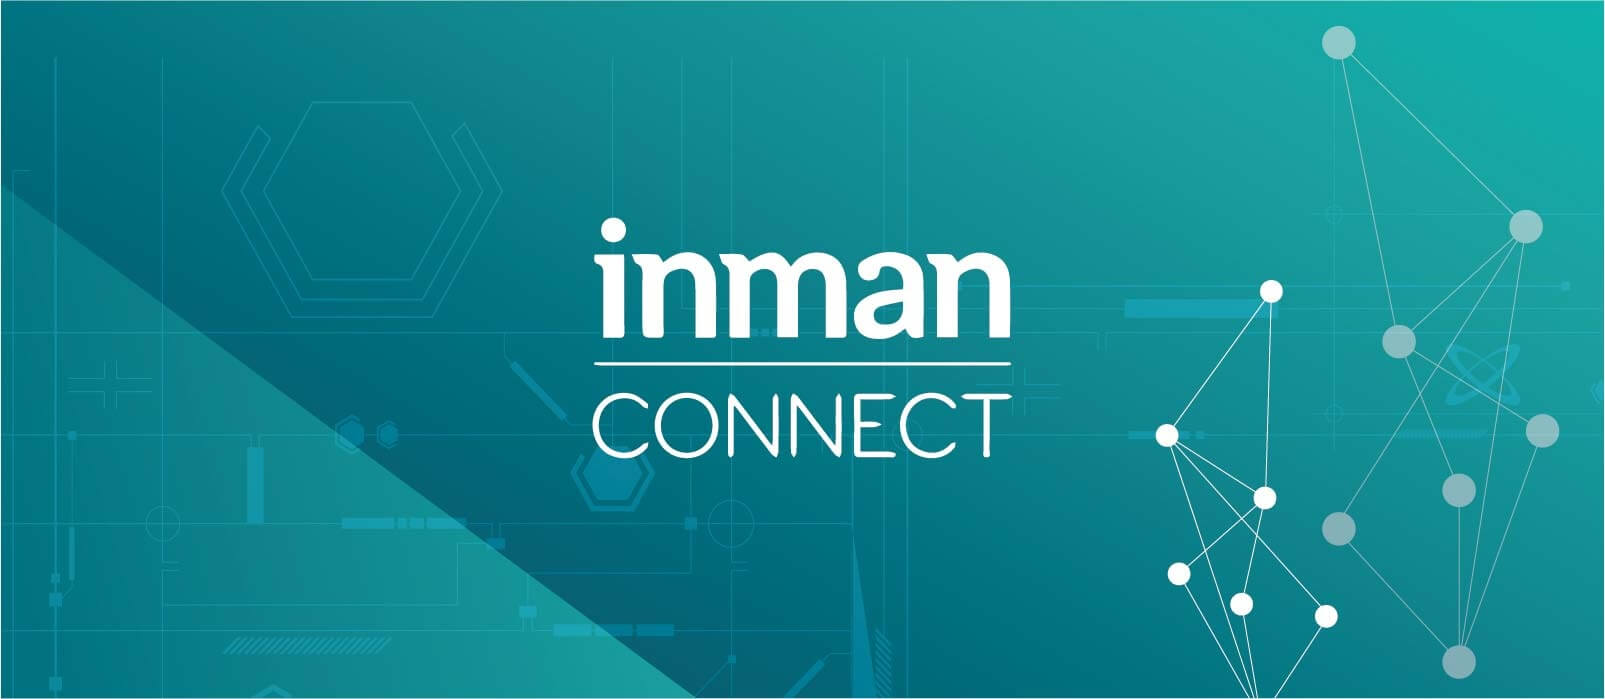 Let's Connect at Inman Connect 2017